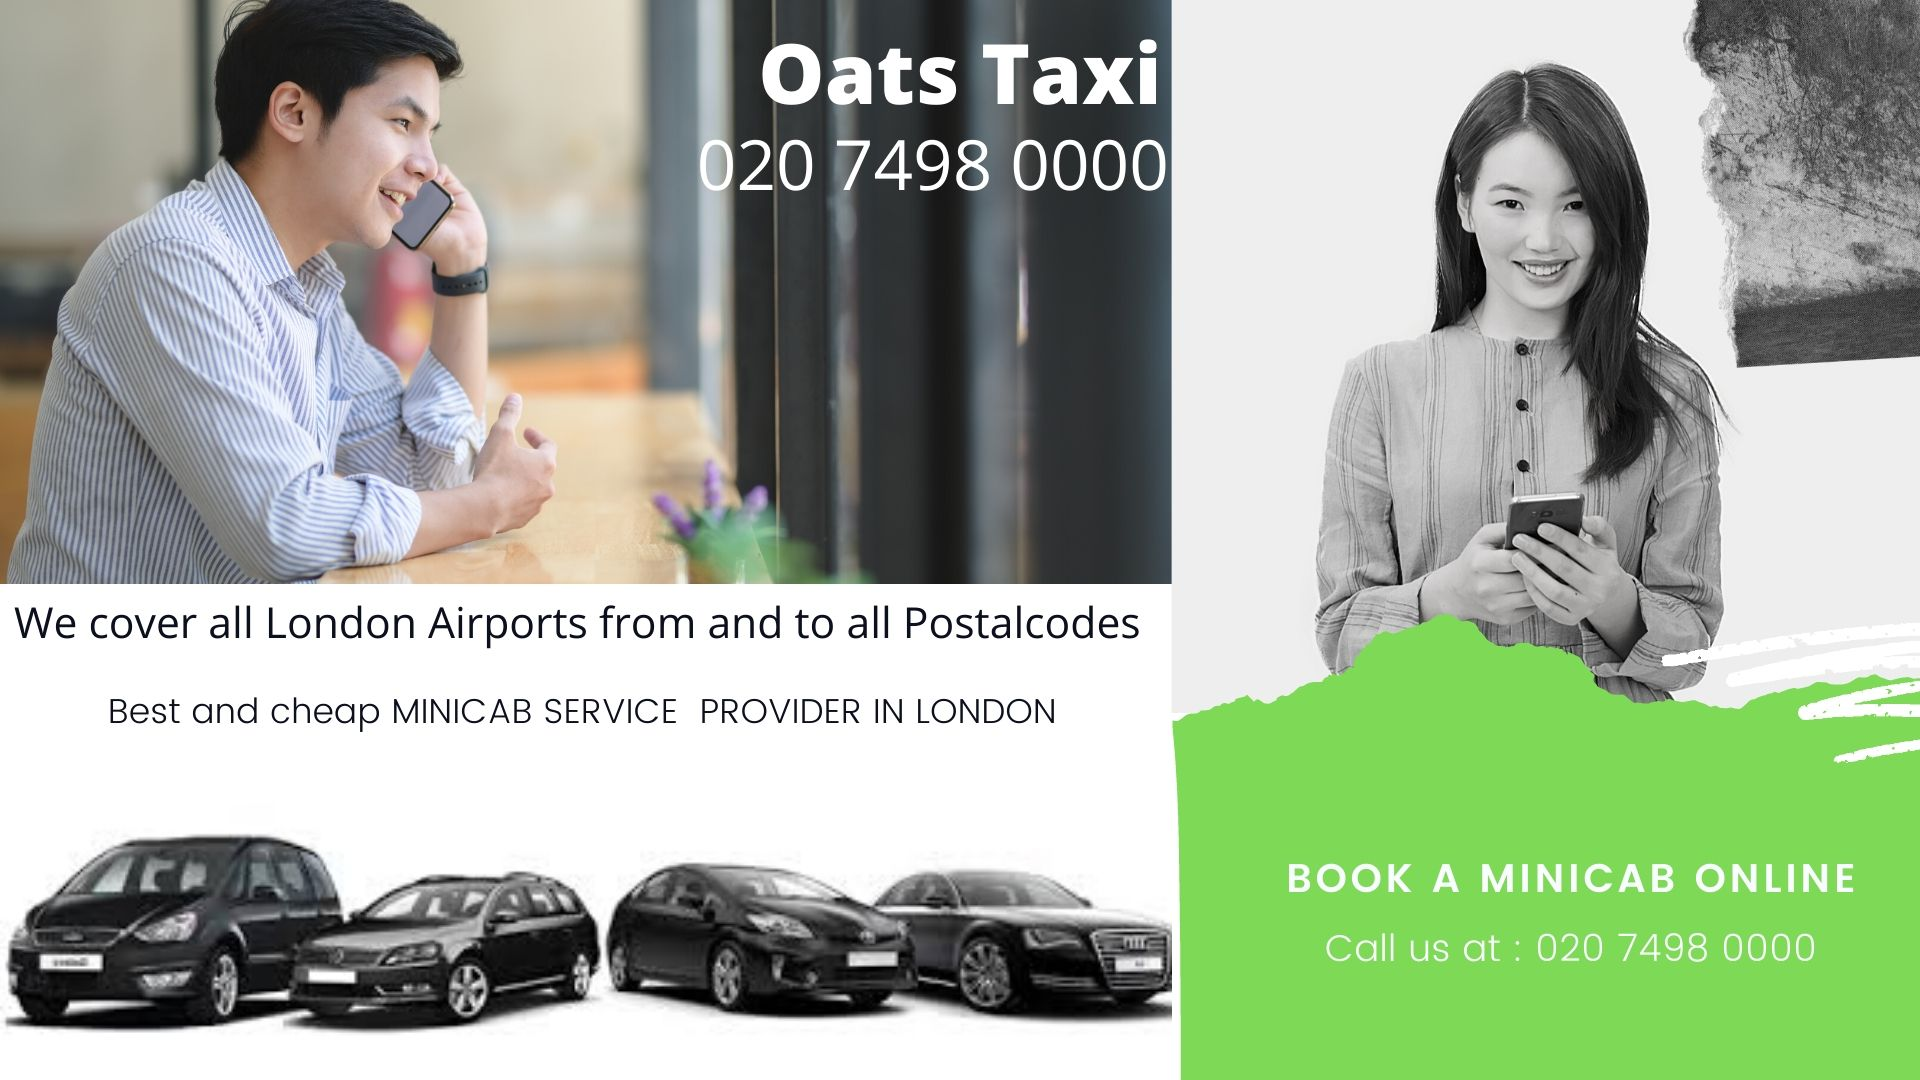 Minicab Office Near GRAYSHOTT ROAD, Battersea SW11, Minicab From Battersea SW11 To Gatwick Airport